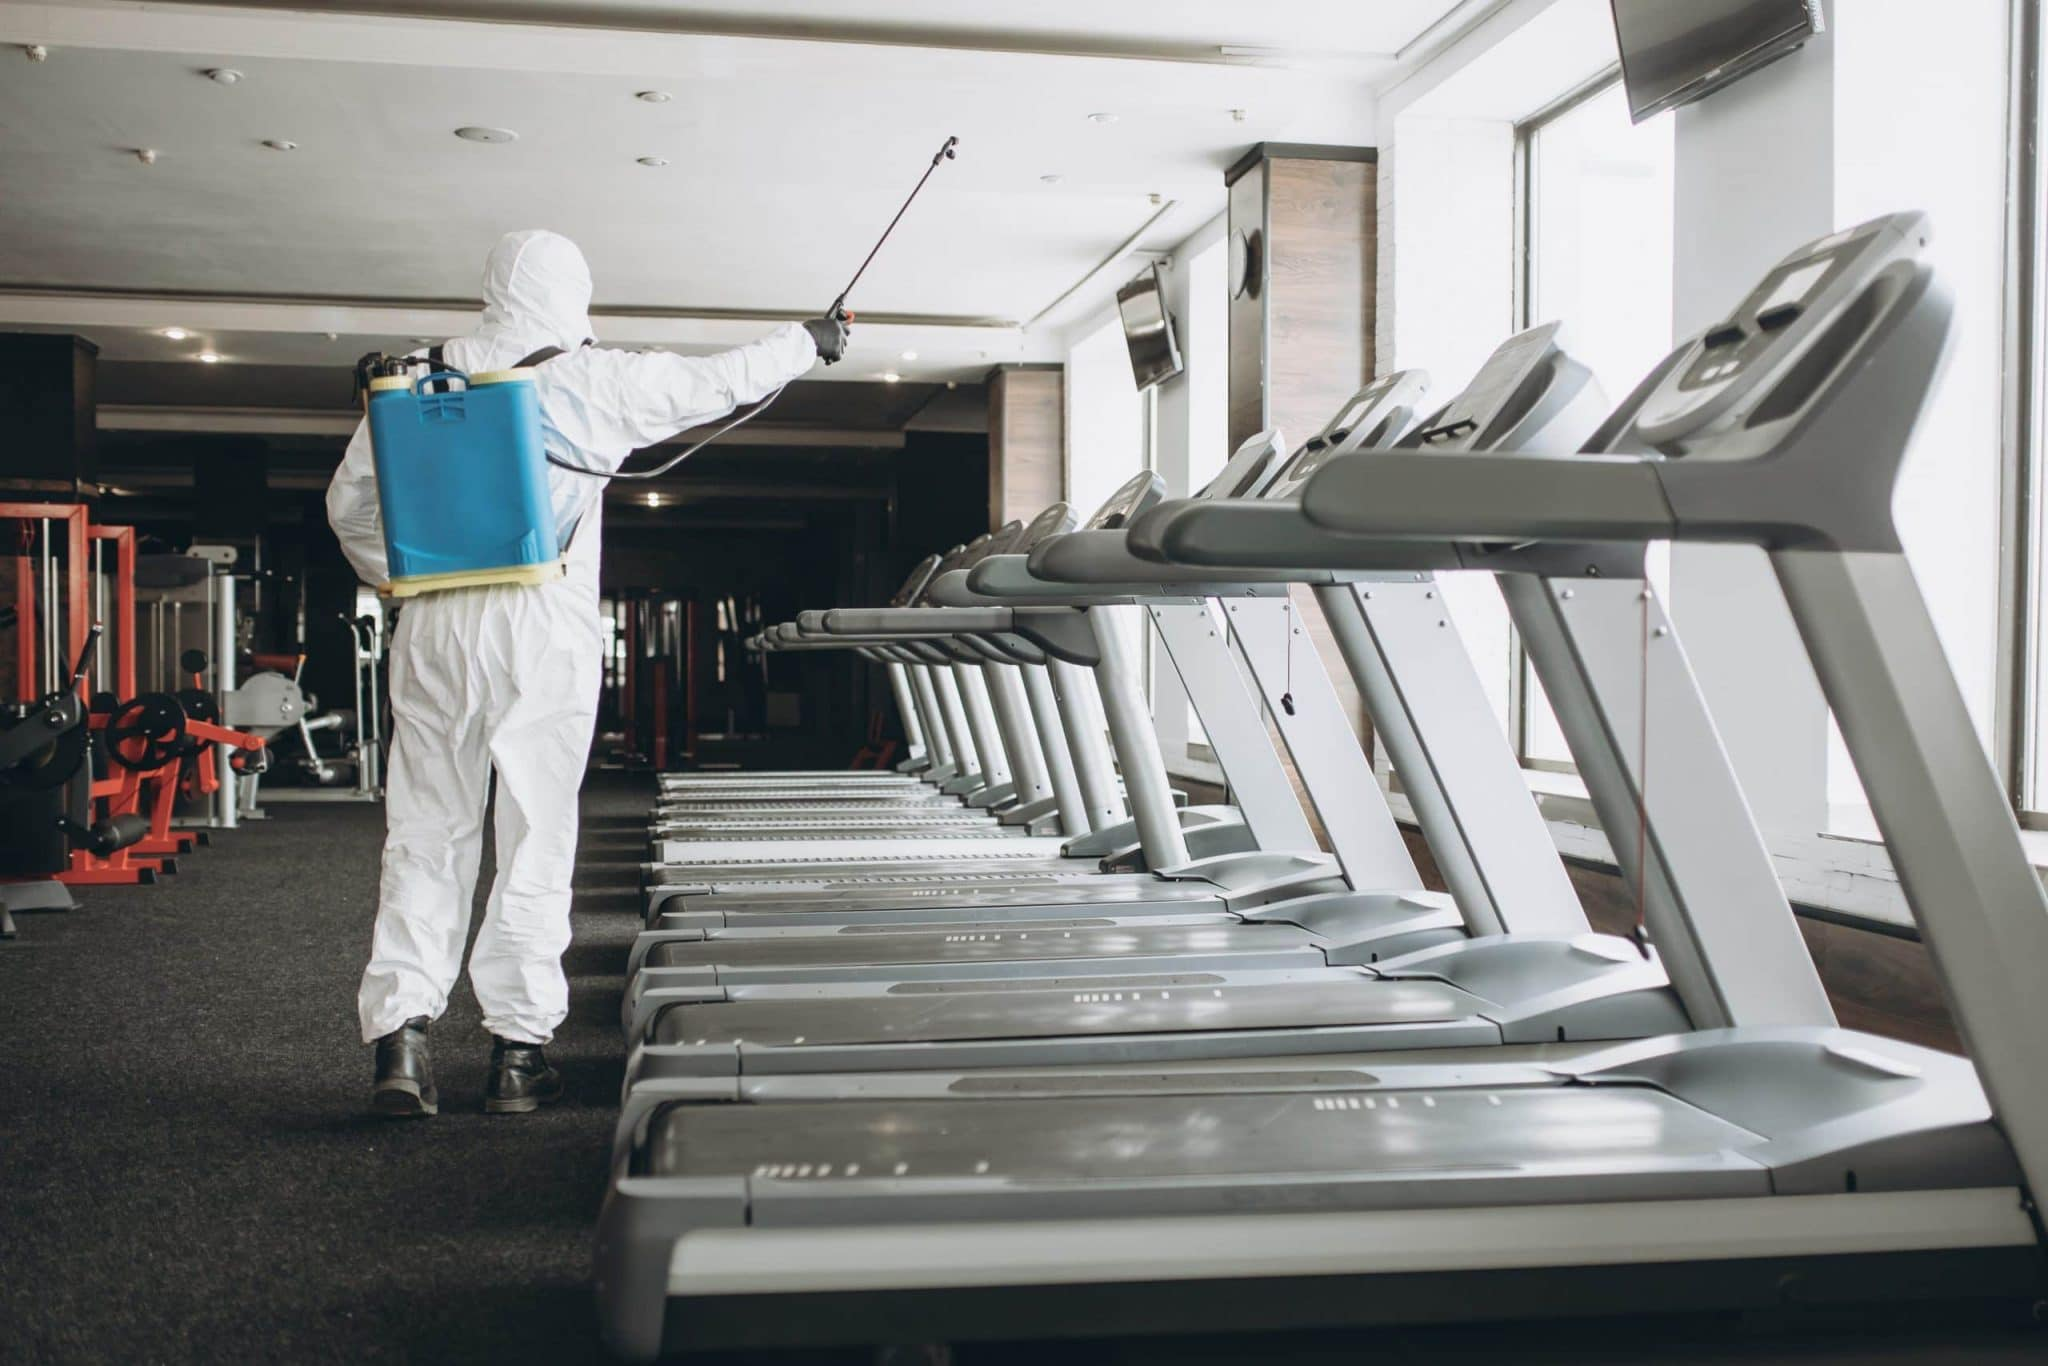 Cleaning and Disinfection in crowded places amid the coronavirus epidemic Gym cleaning and disinfection Infection prevention and control of epidemic. Protective suit and mask and spray bag